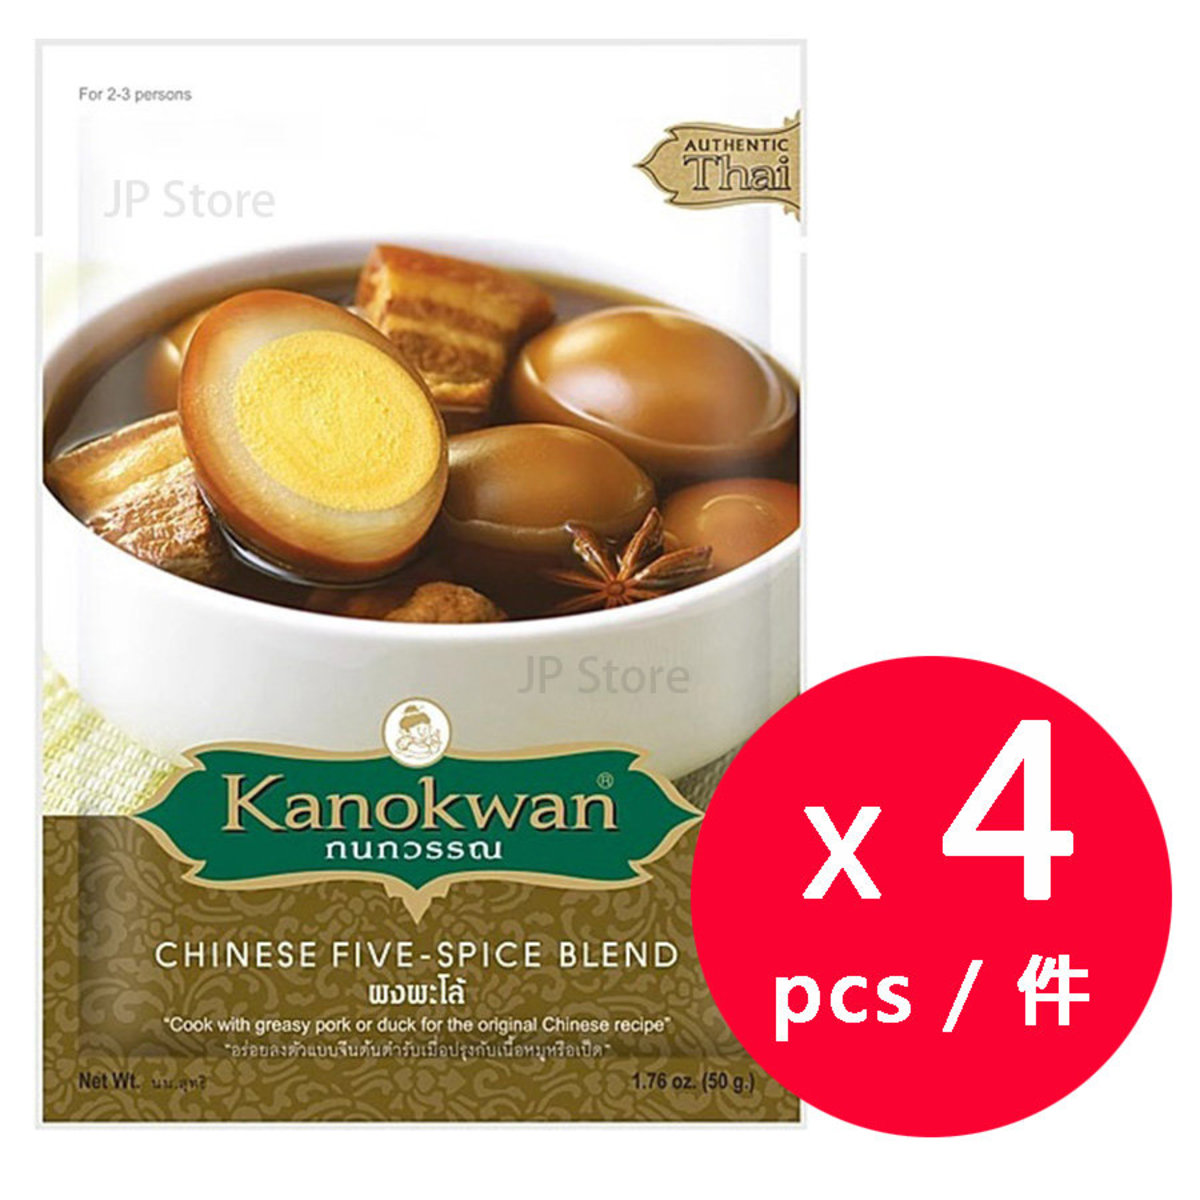 Kanokwan Chinese Five Spice Blend 50g x 4 packs